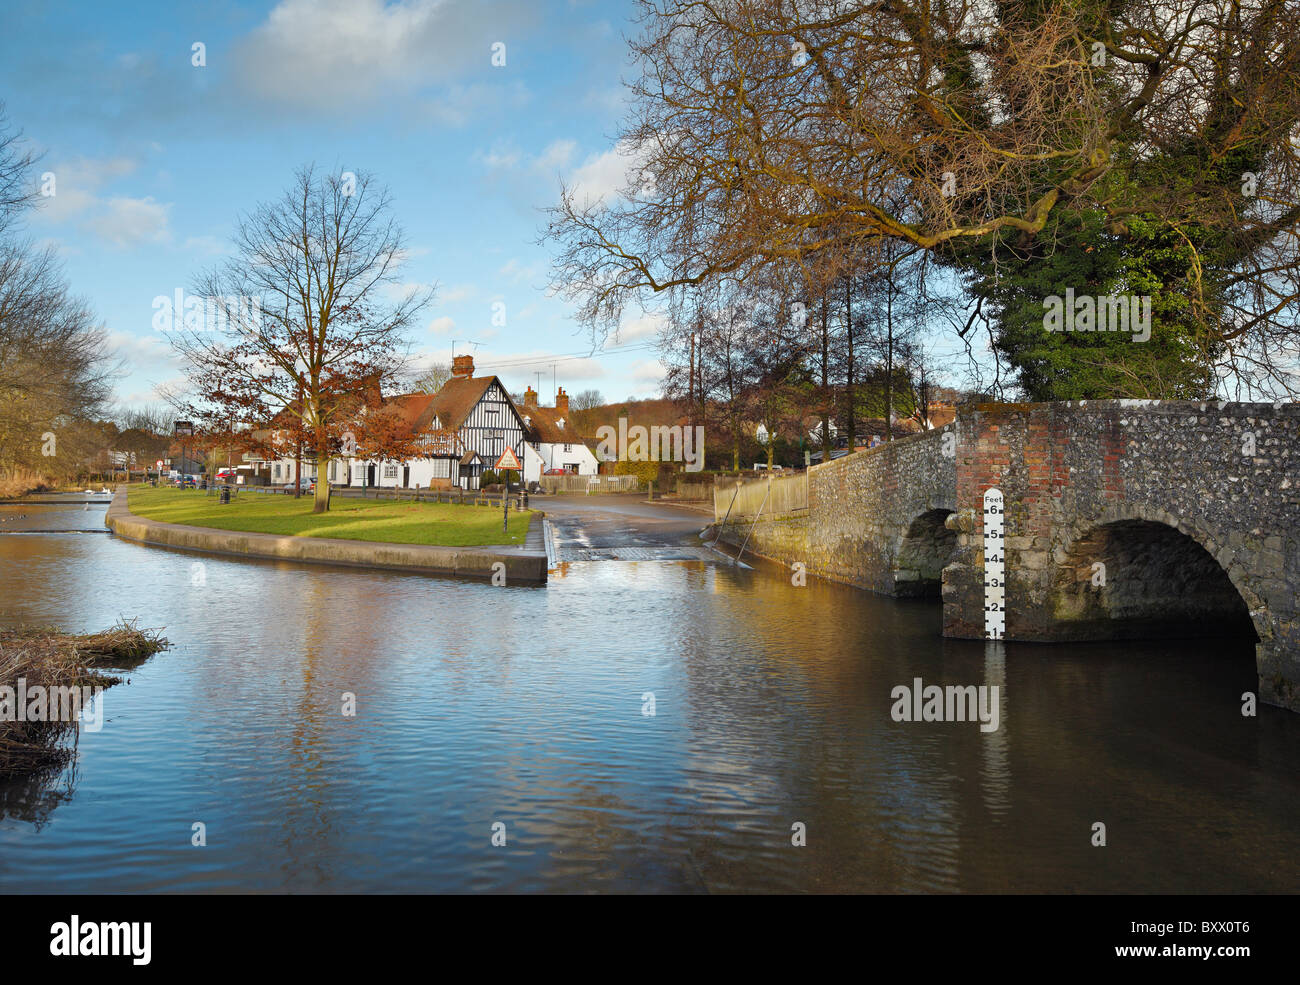 The Ford and ancient bridge at Eynsford. - Stock Image